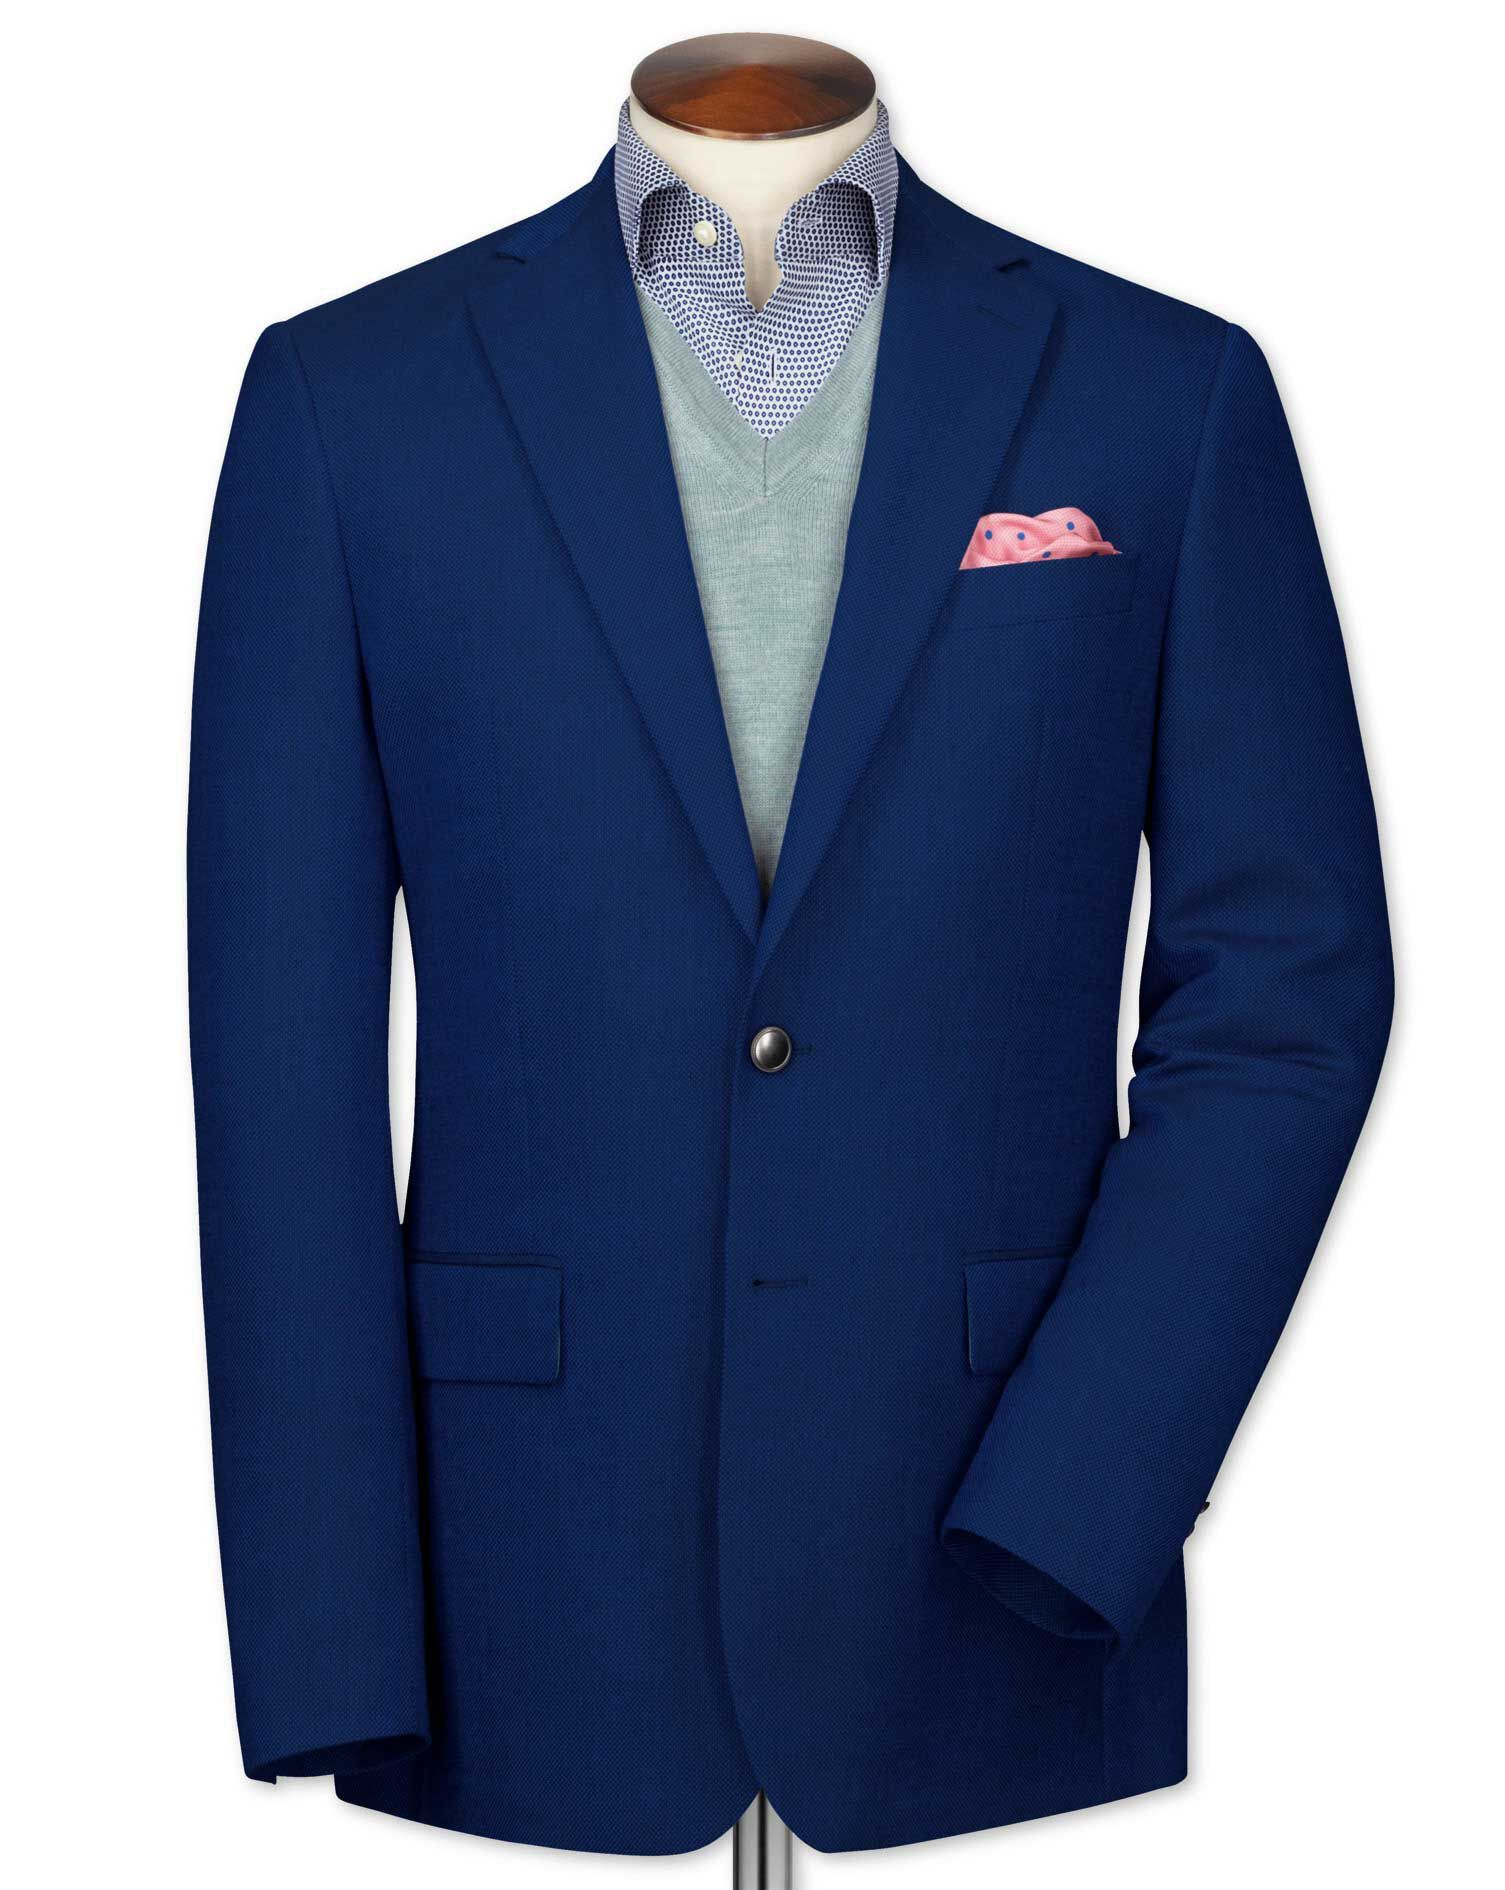 Slim Fit Royal Blue Wool Wool Blazer Size 38 by Charles Tyrwhitt